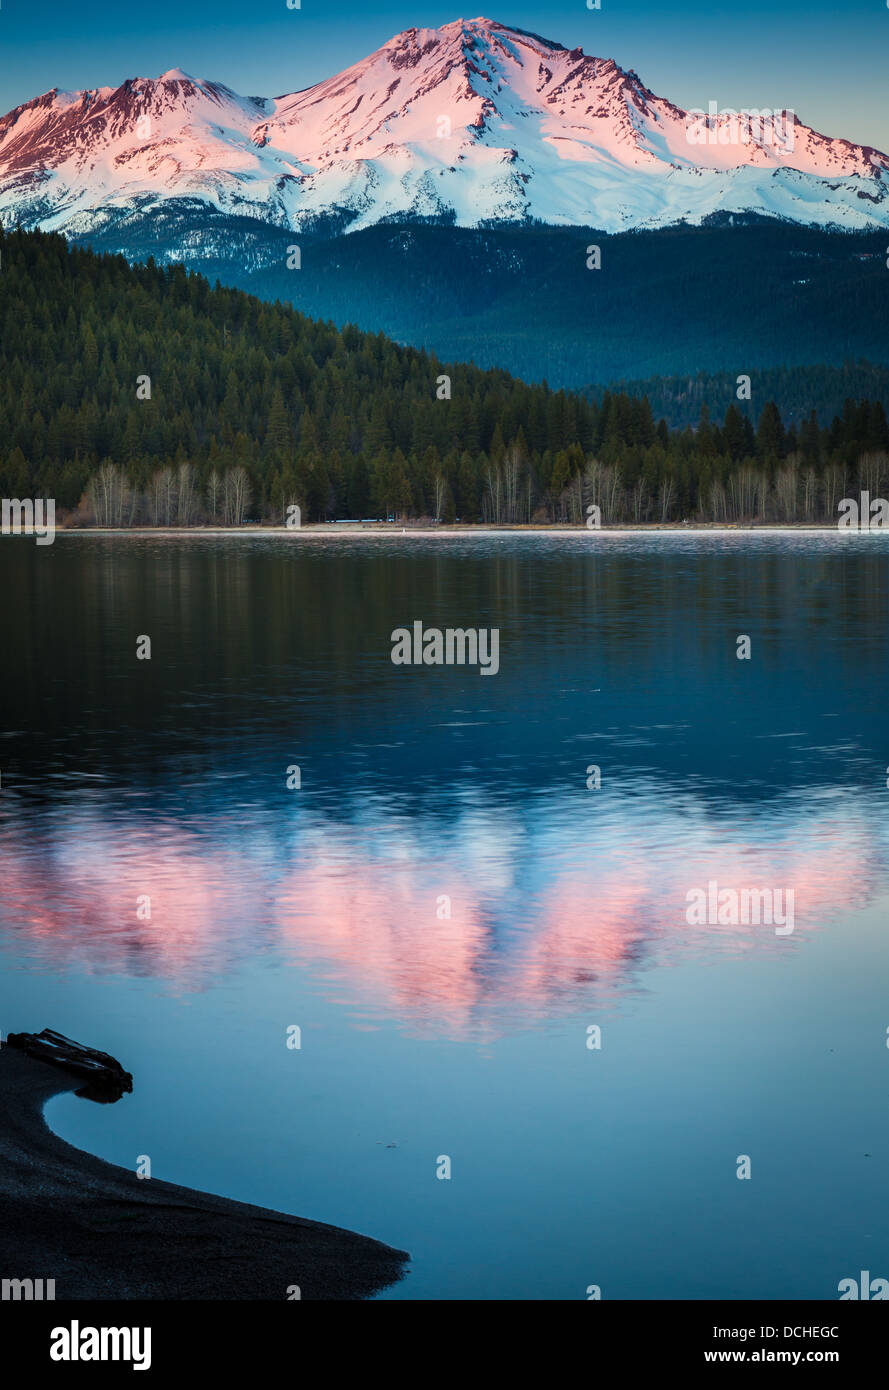 Mount Shasta reflecting in nearby Lake Siskiyou, California - Stock Image